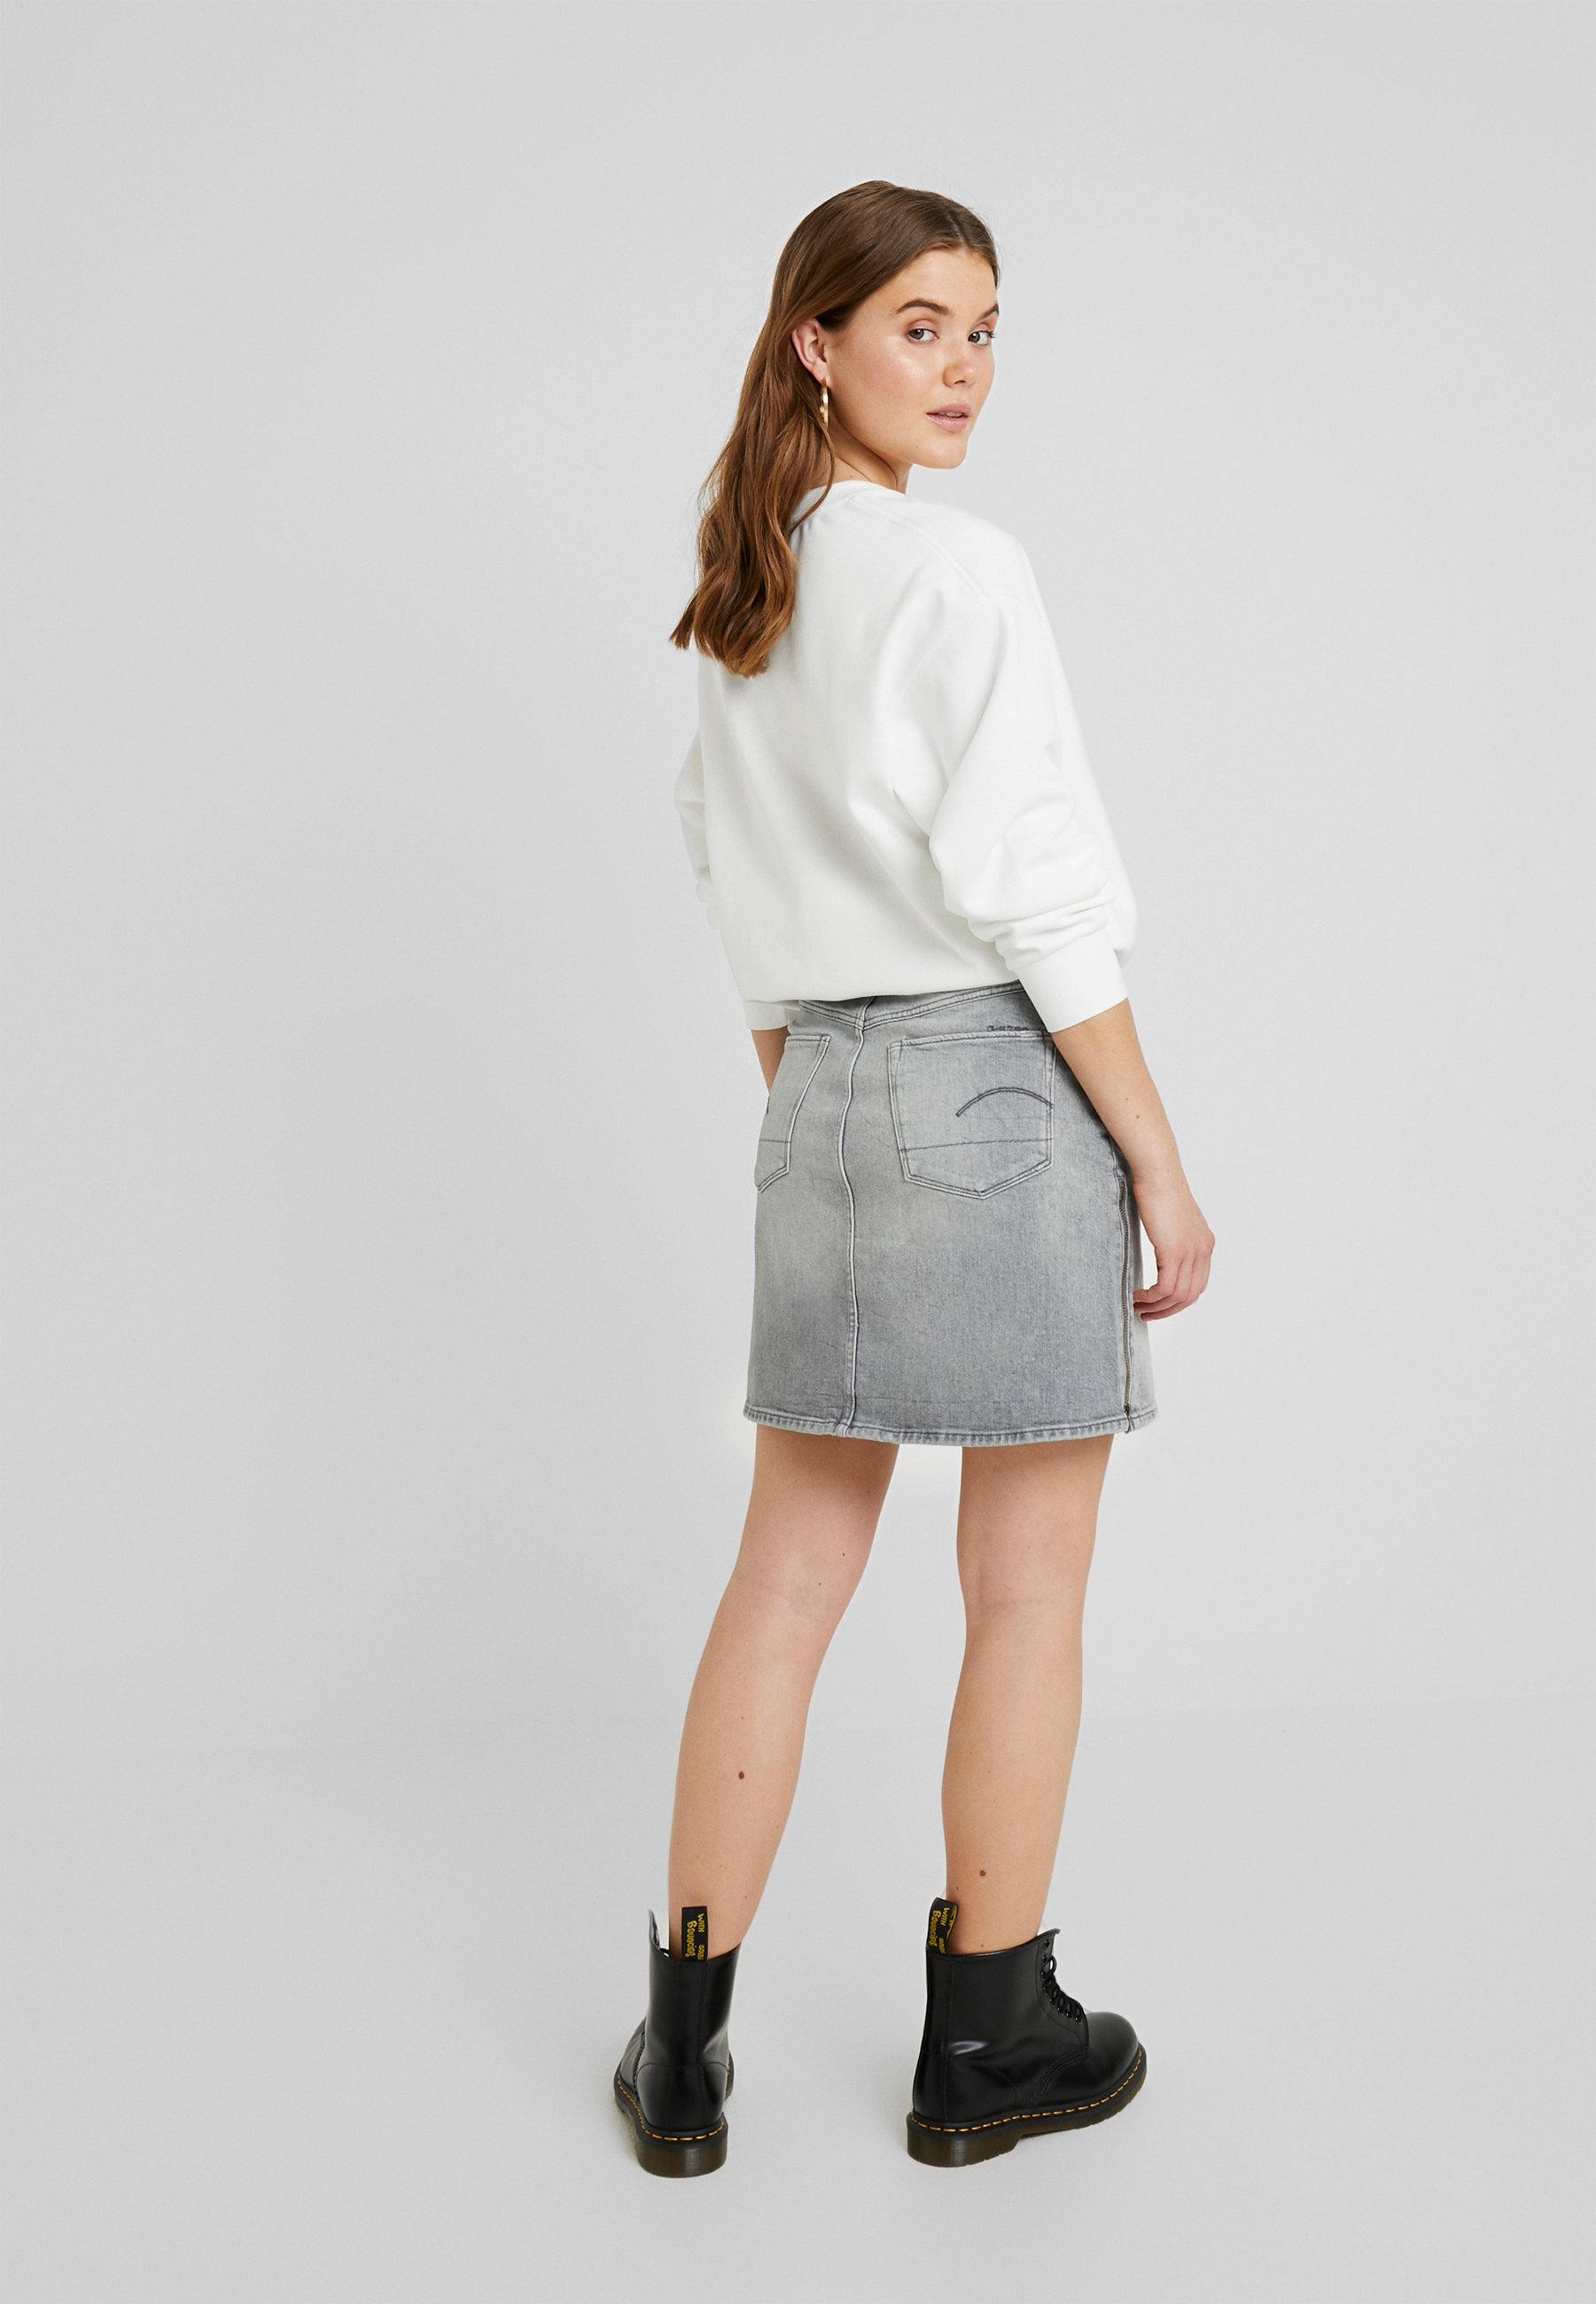 G Grey Denim star SkirtJupe Trapèze 3301 Zip Lavas Stretch CrexBoWEQd